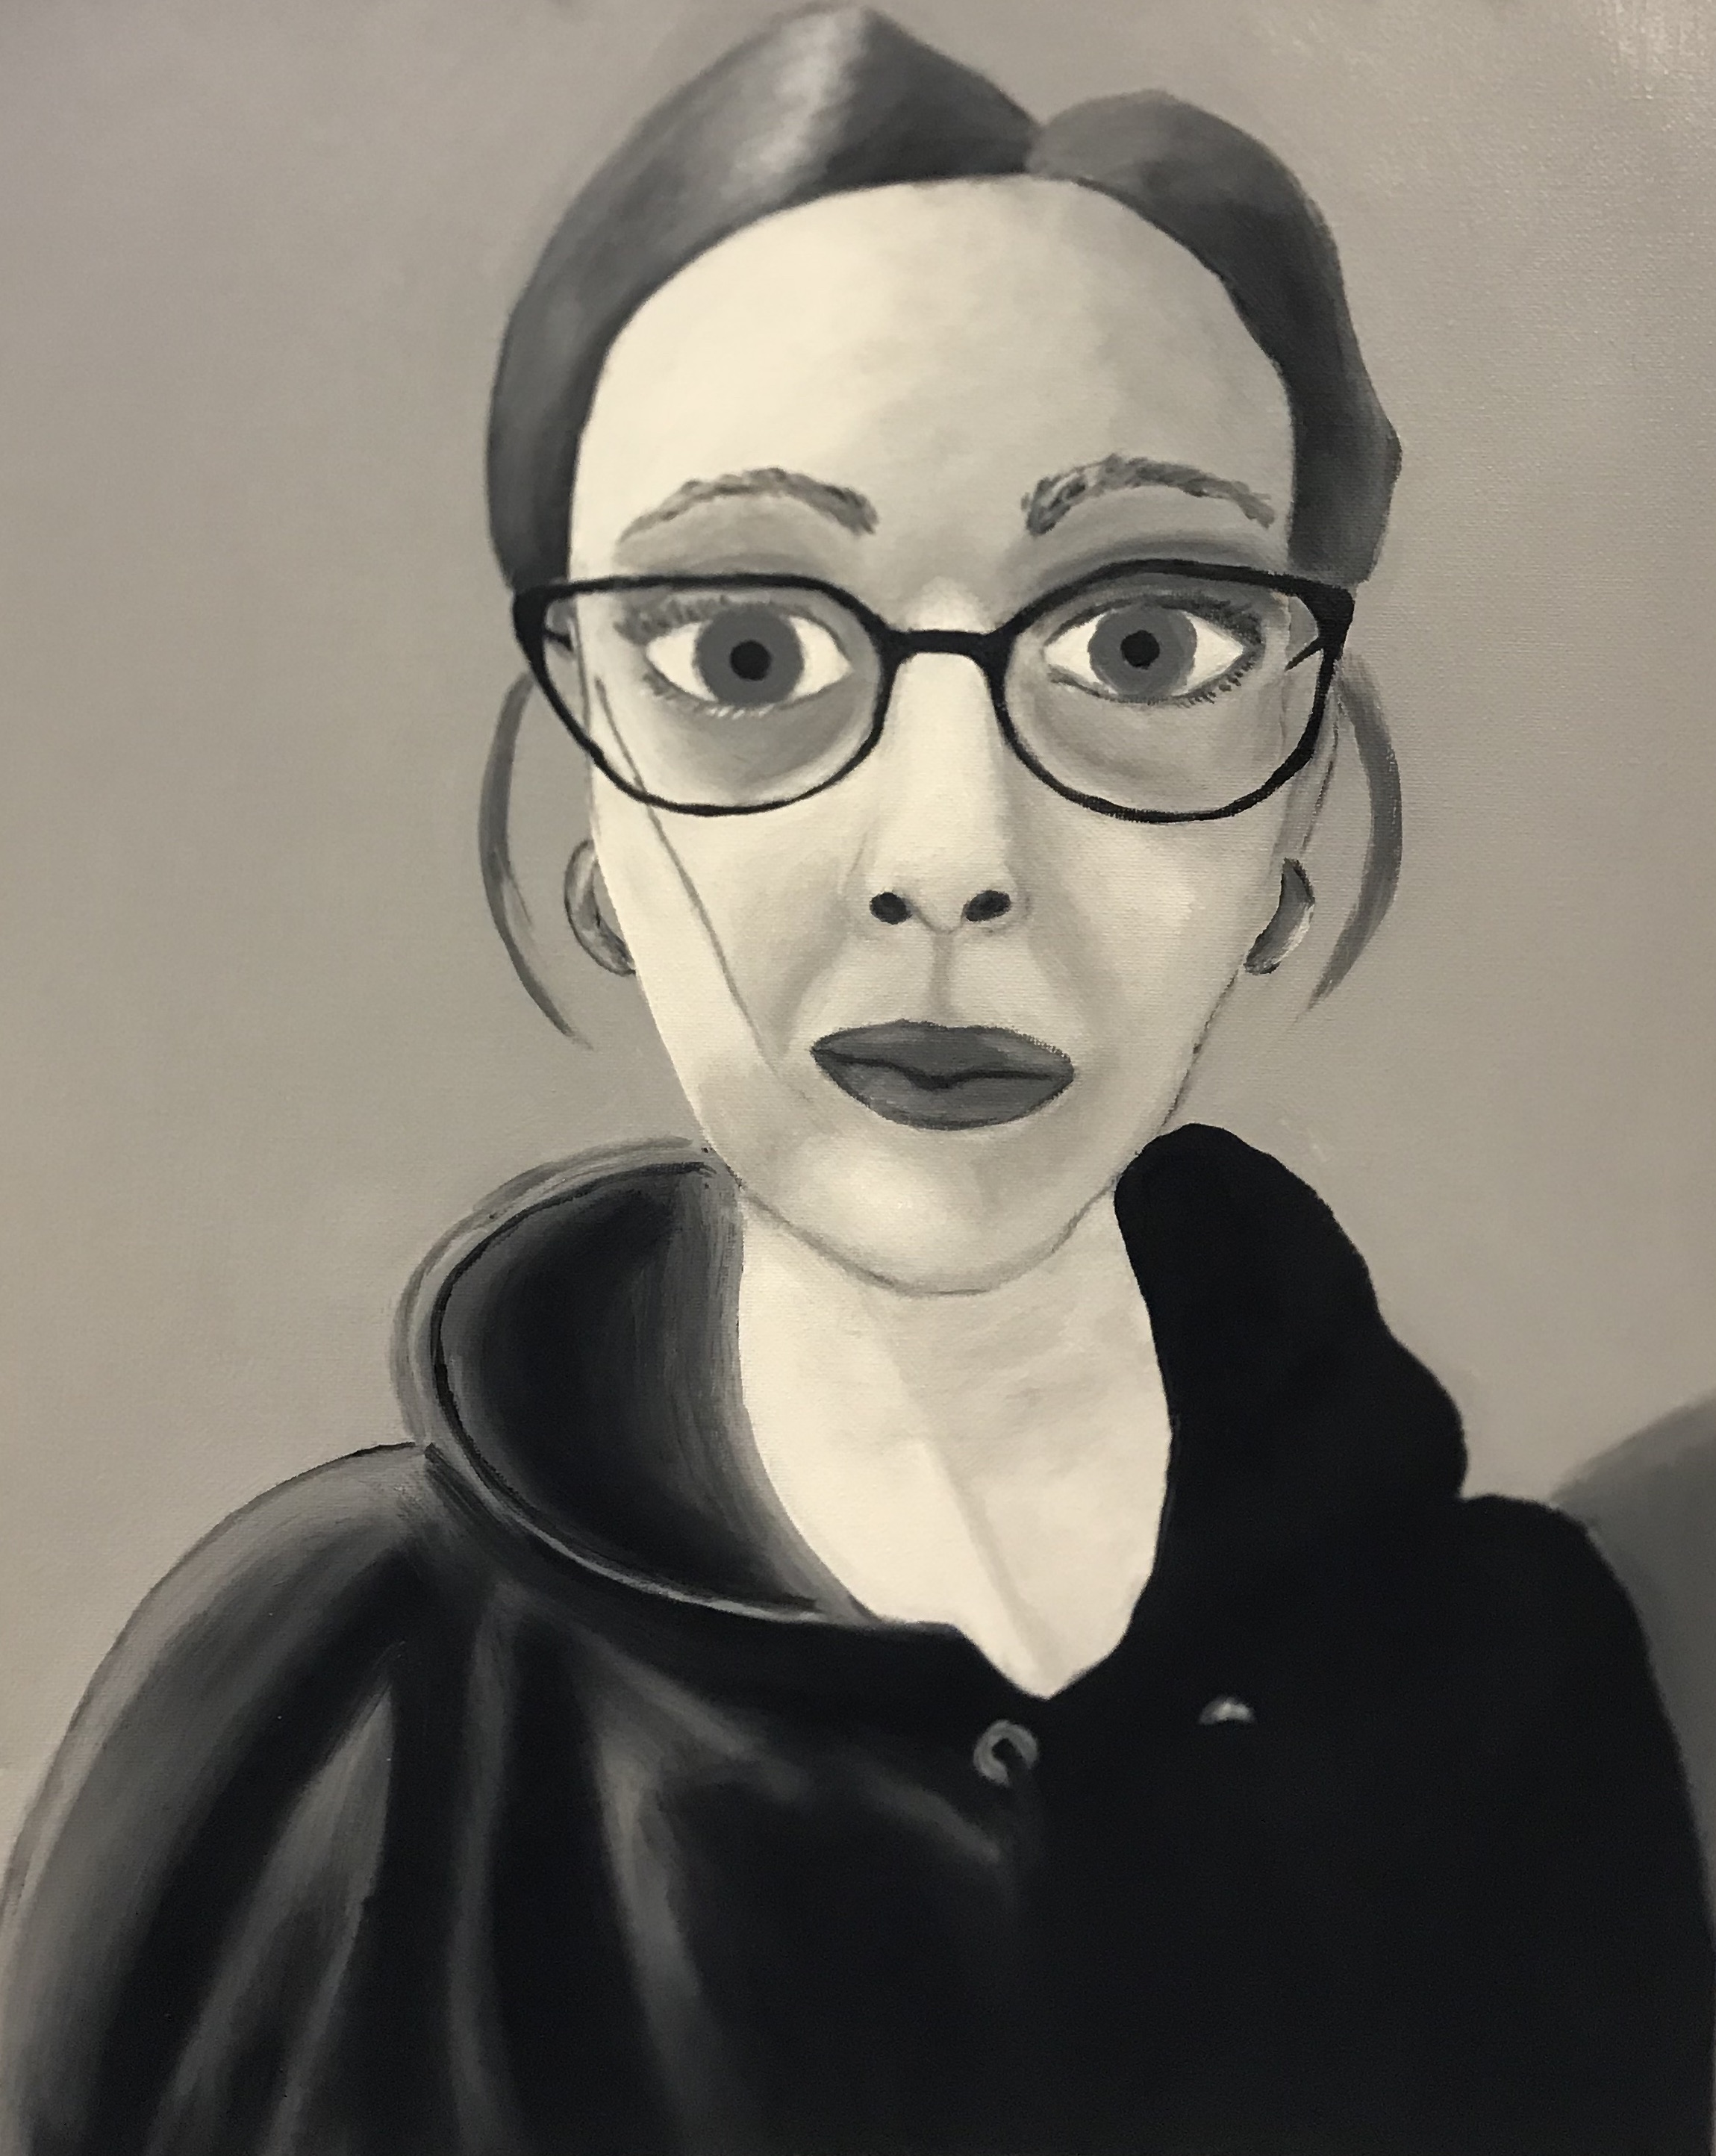 painting techniques: black and white underpainting